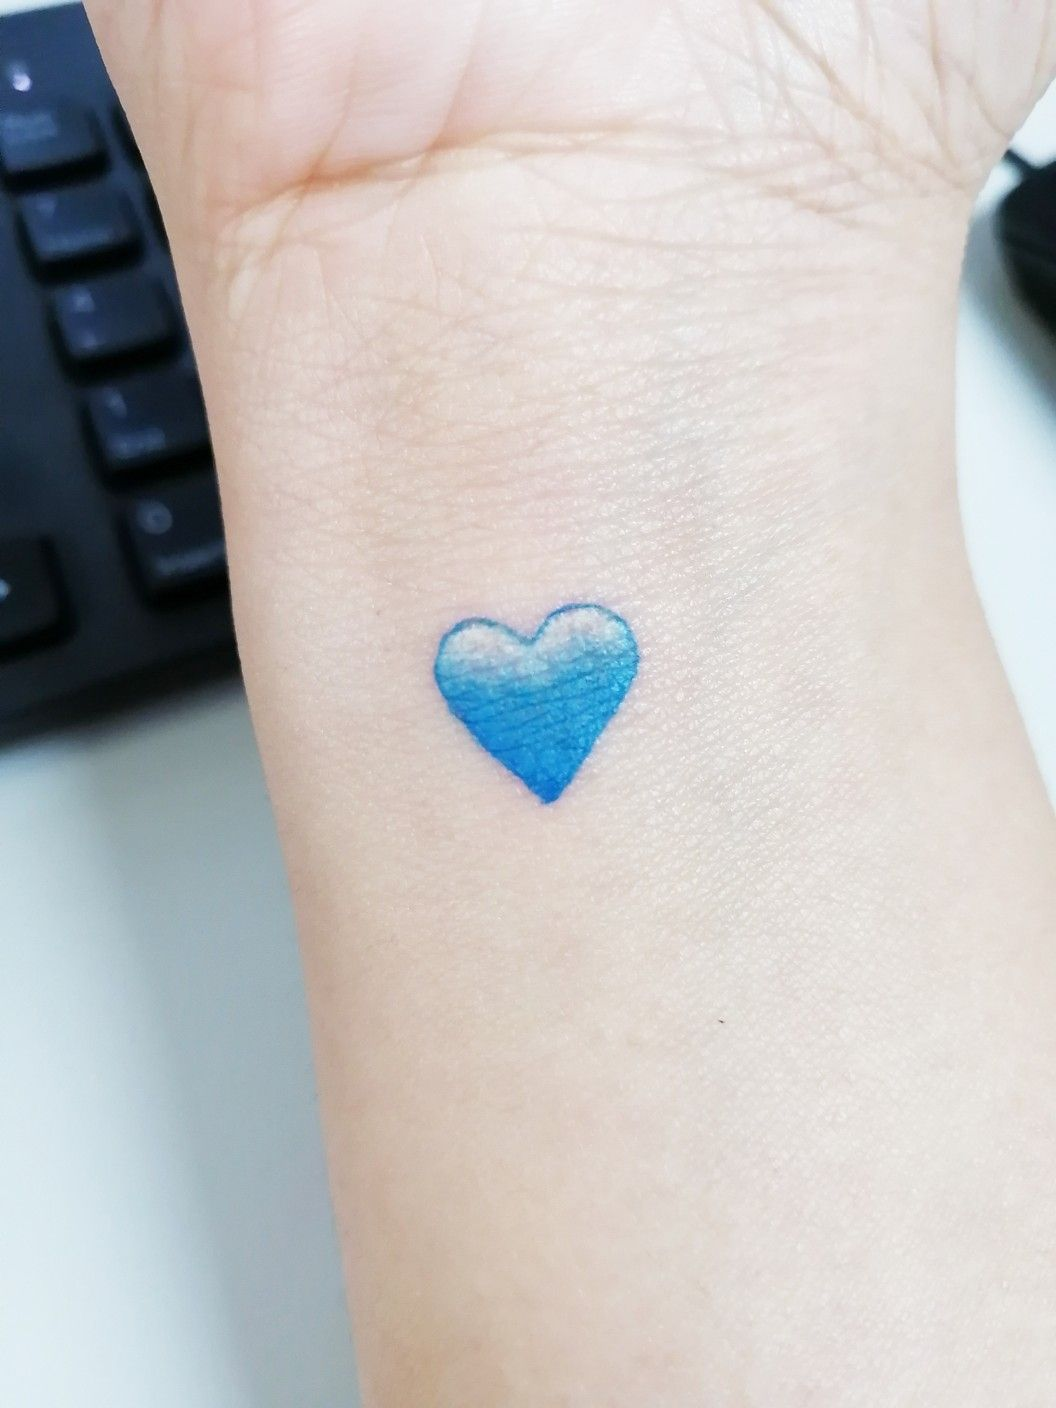 Tiny Heart Tattoo Tiny Heart Tattoos Tattoos Tattoos For Daughters